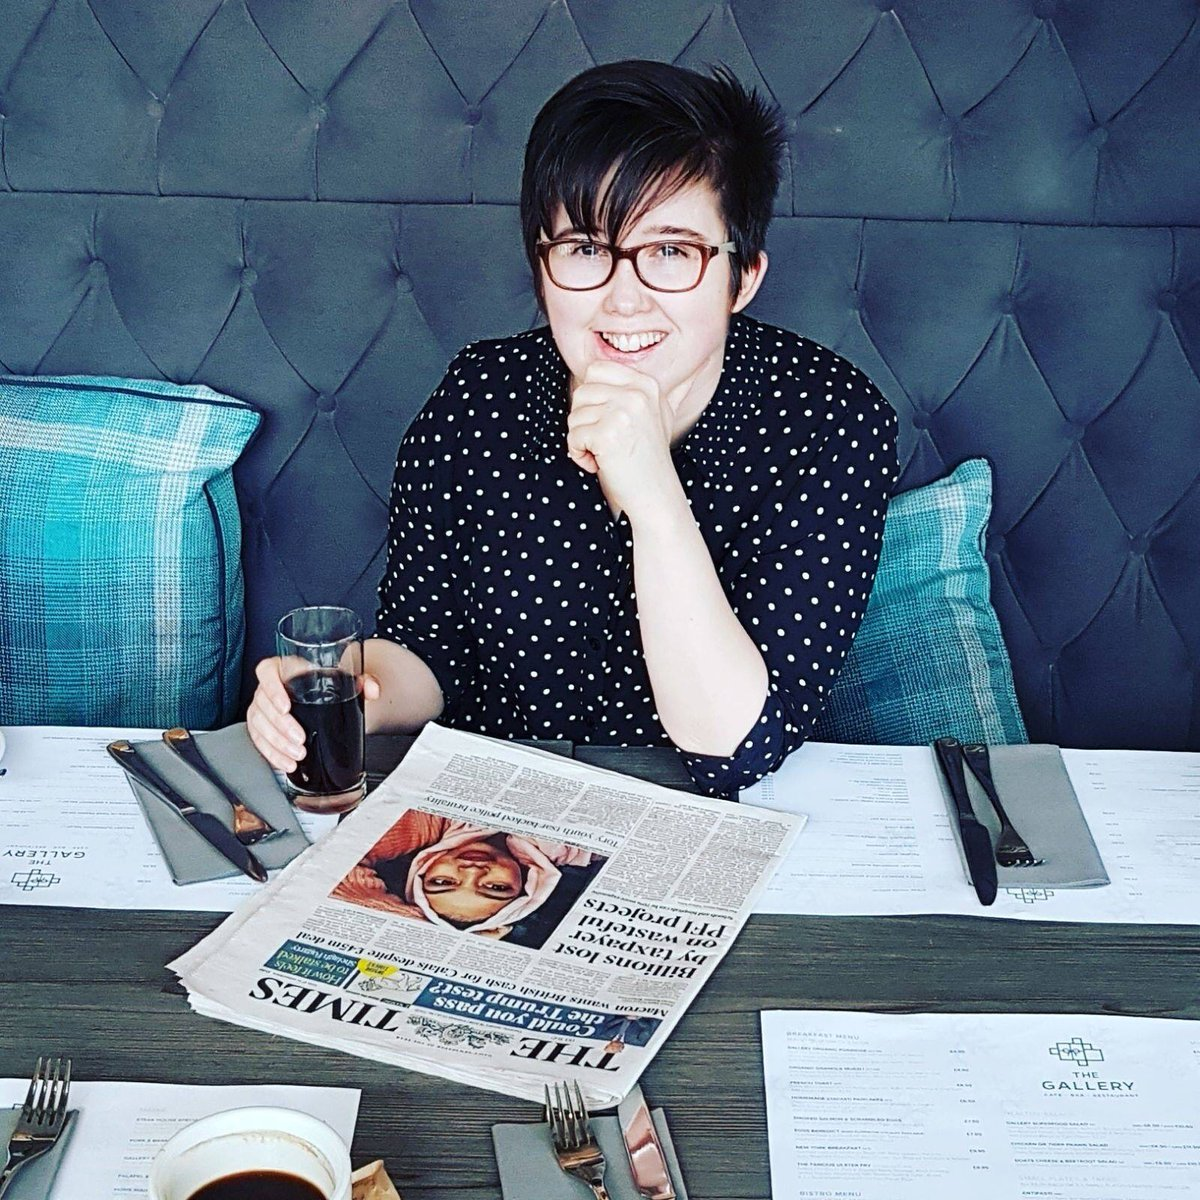 Lyra McKee&#39;s funeral service will be held today at 1.00pm to celebrate her life, comfort those grieving and to state, in the words of Lyra&#39;s partner, Sara, that &#39;her death should not be in vain&#39;. More details here:  https:// bit.ly/2DuTP1C  &nbsp;    #bproud2019  #NotInMyName  #ItGetsBetter <br>http://pic.twitter.com/lRAHeo0XXf